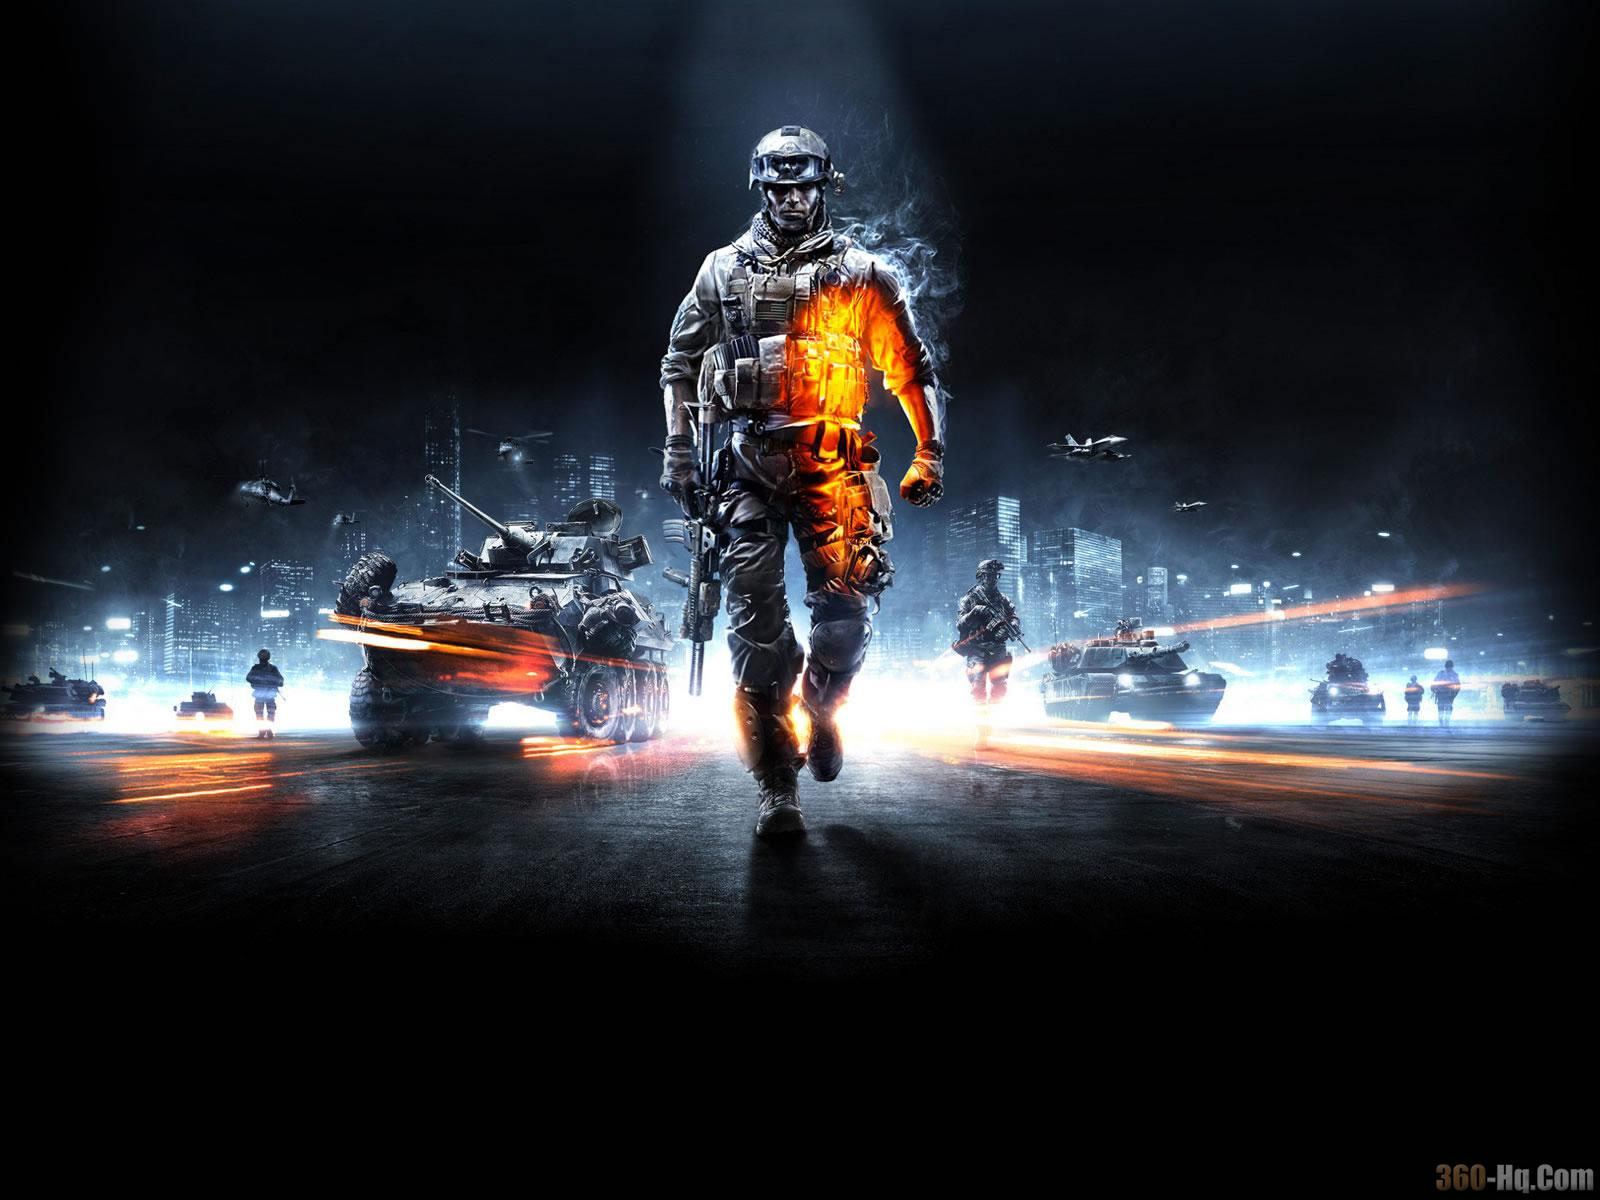 Battlefield 3 Screenshot 15729